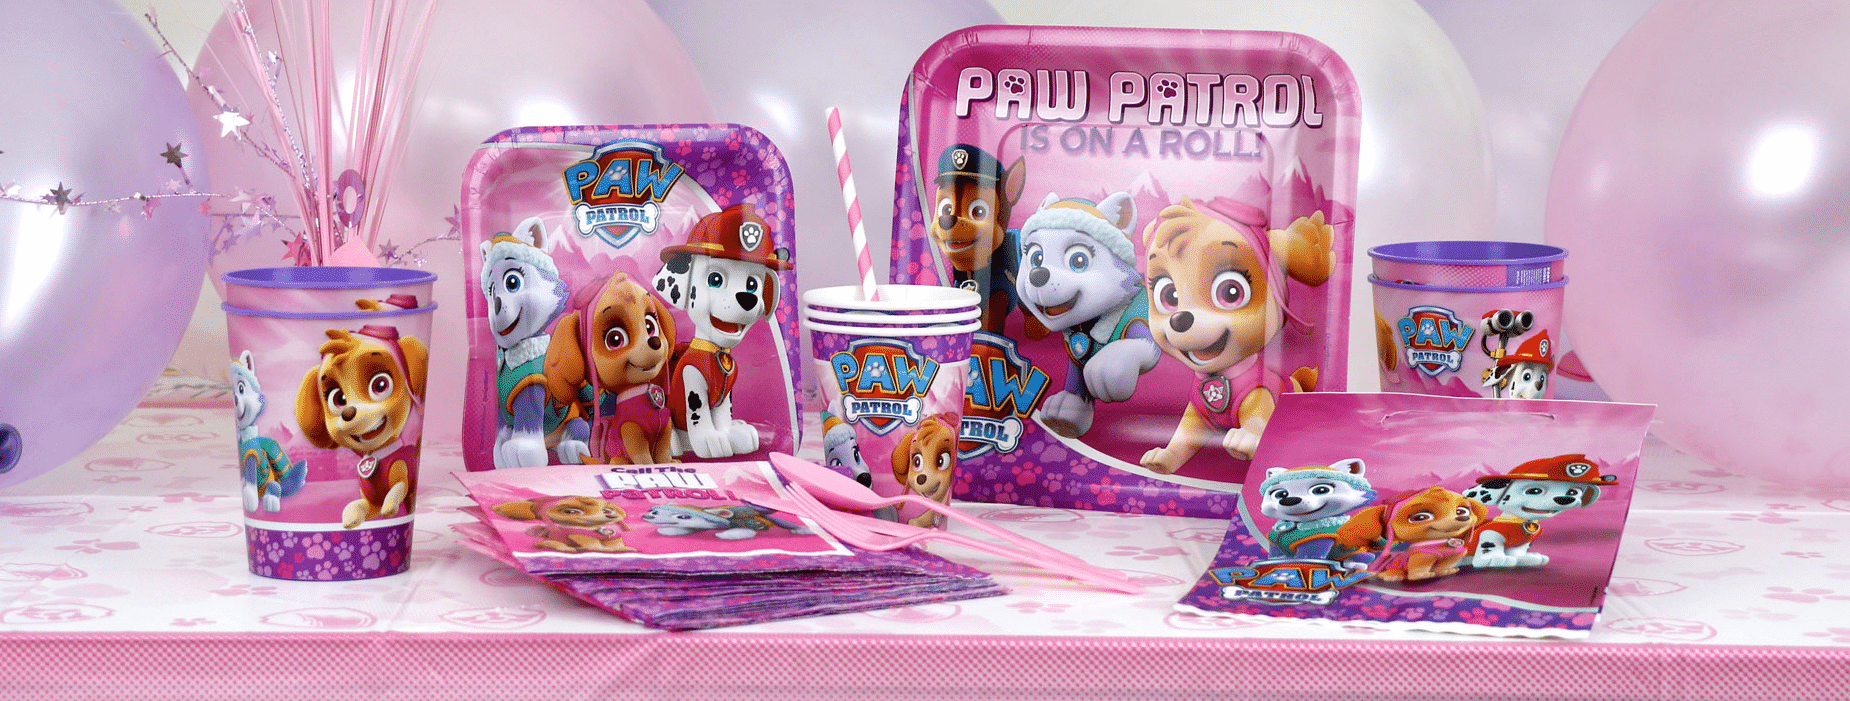 Paw Patrol Pink themed party supplies, Paw Patrol Party decorations & balloons next day delivery